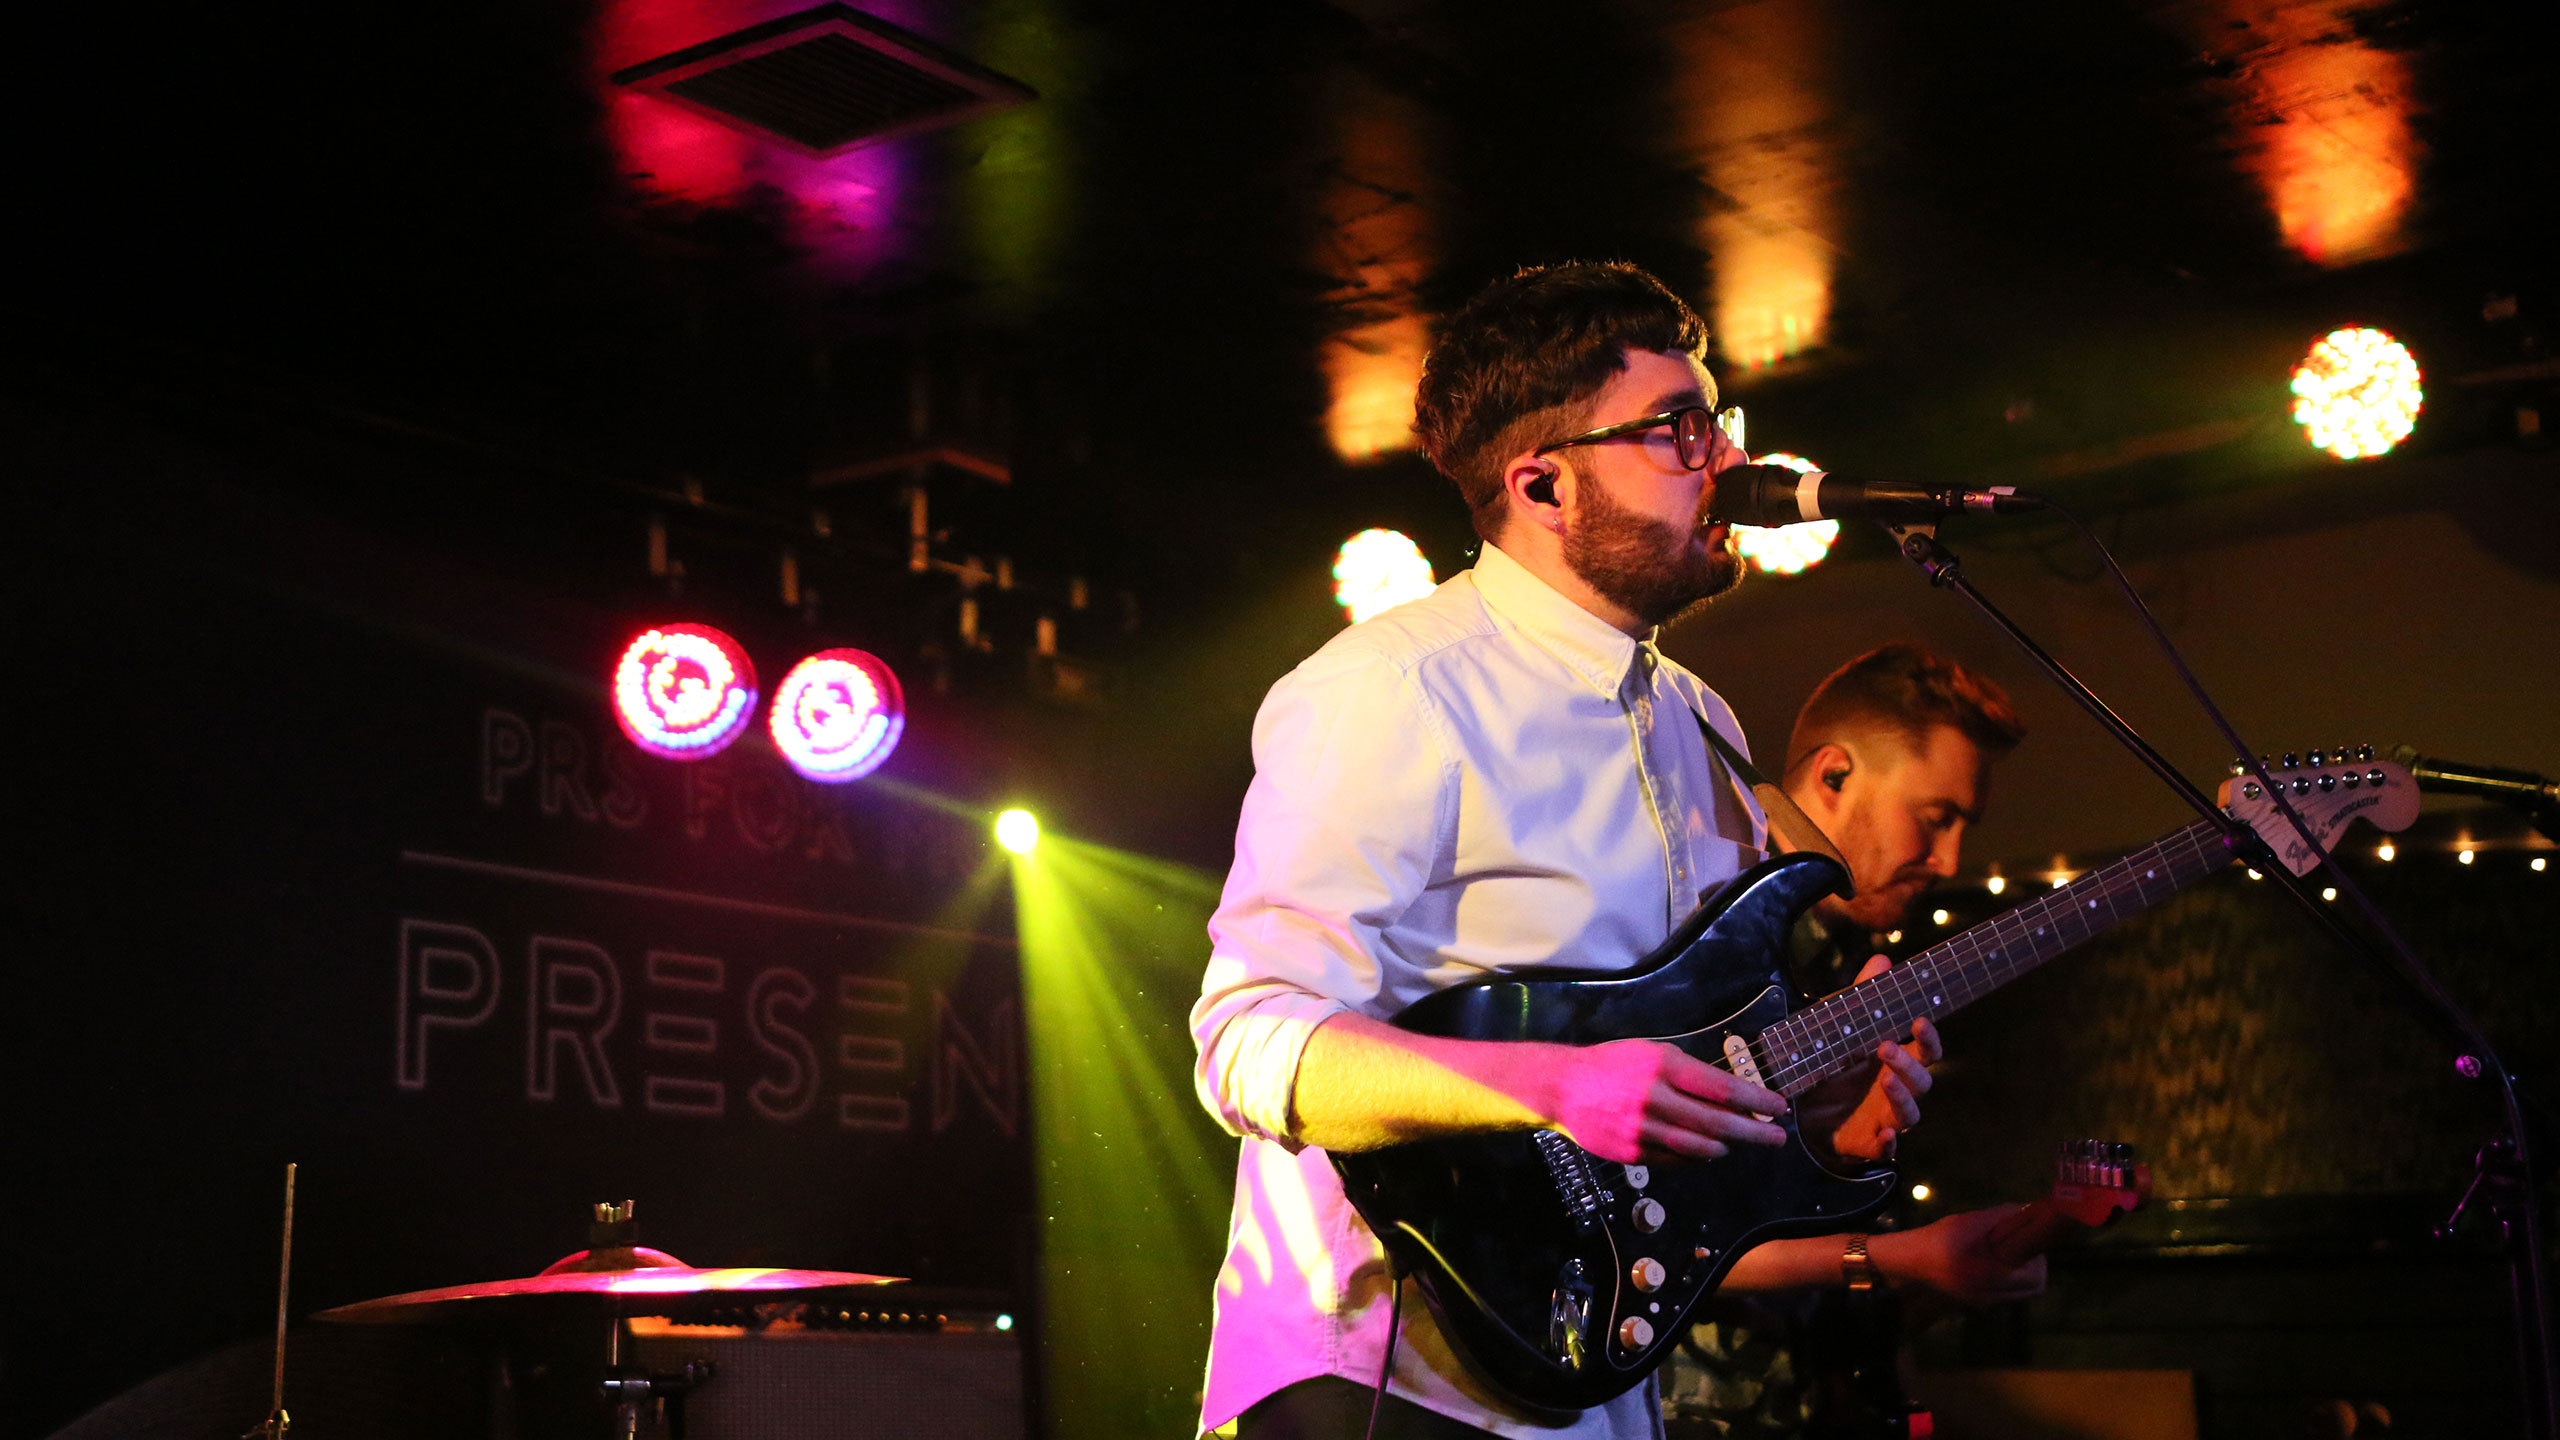 Fatherson frontman Ross Leighton performs at PRS for Music Presents